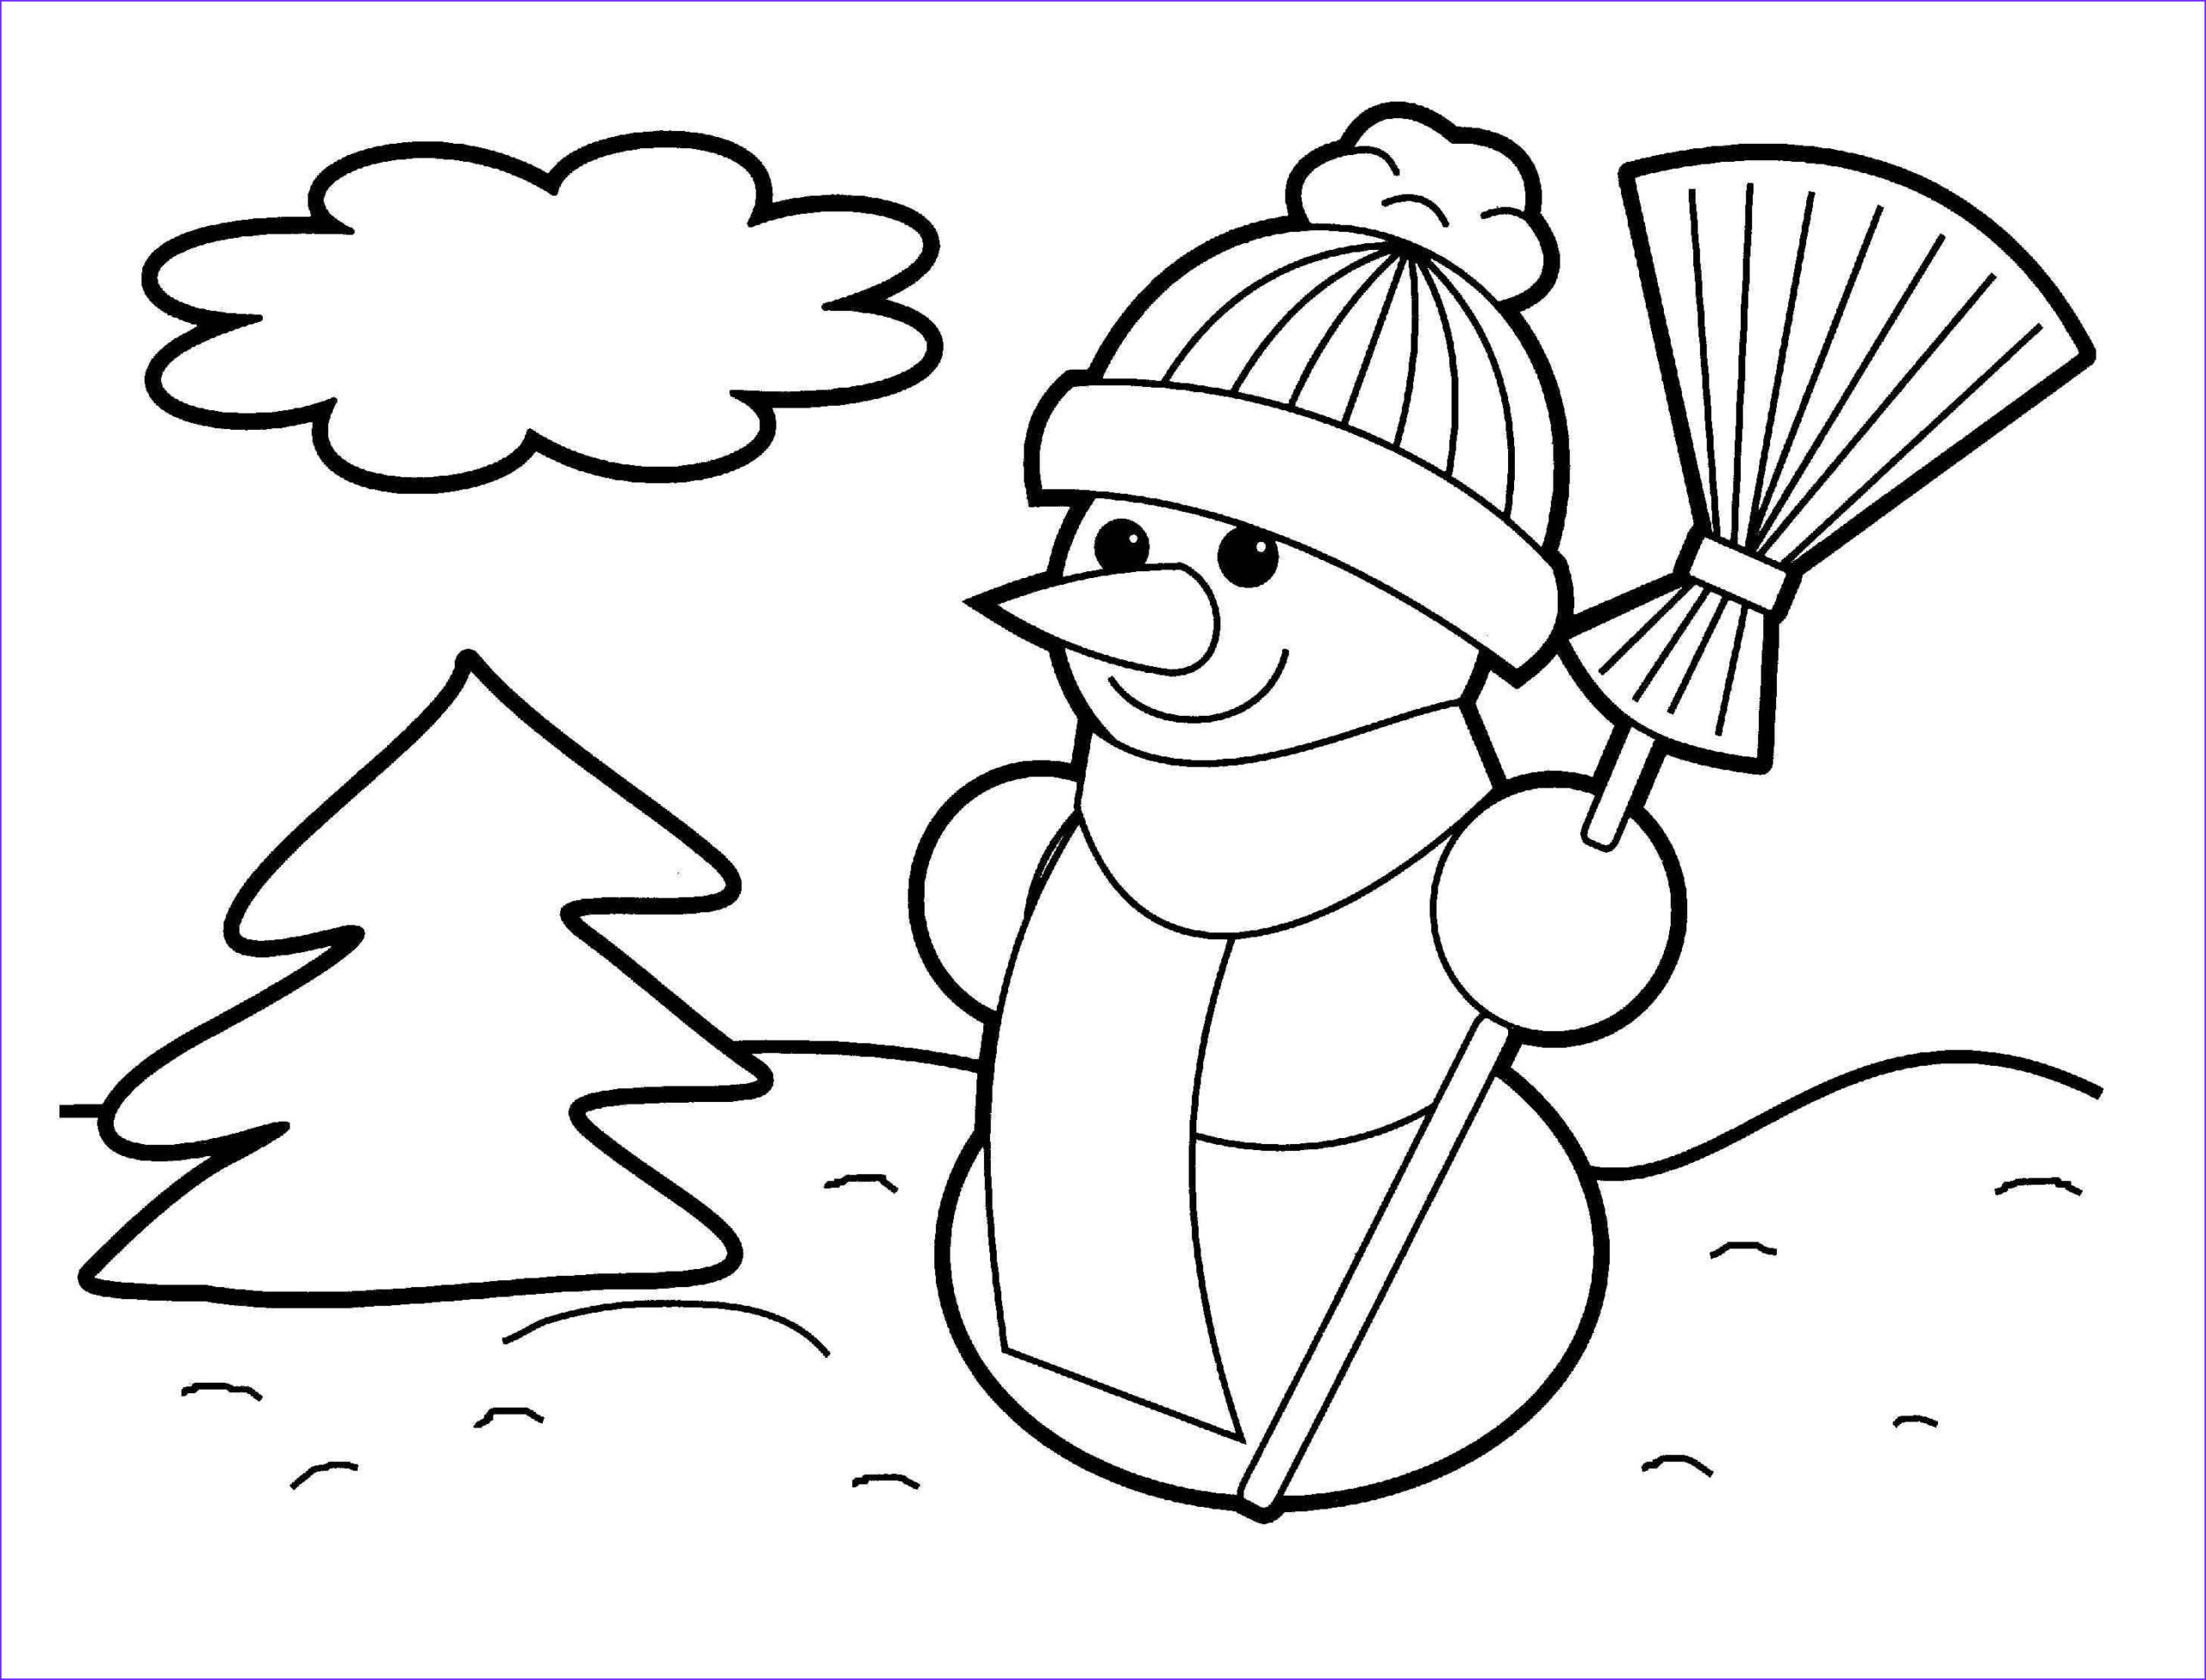 Christmas Coloring Sheets Luxury Images Free Christmas Coloring Pages to Print – Wallpapers9